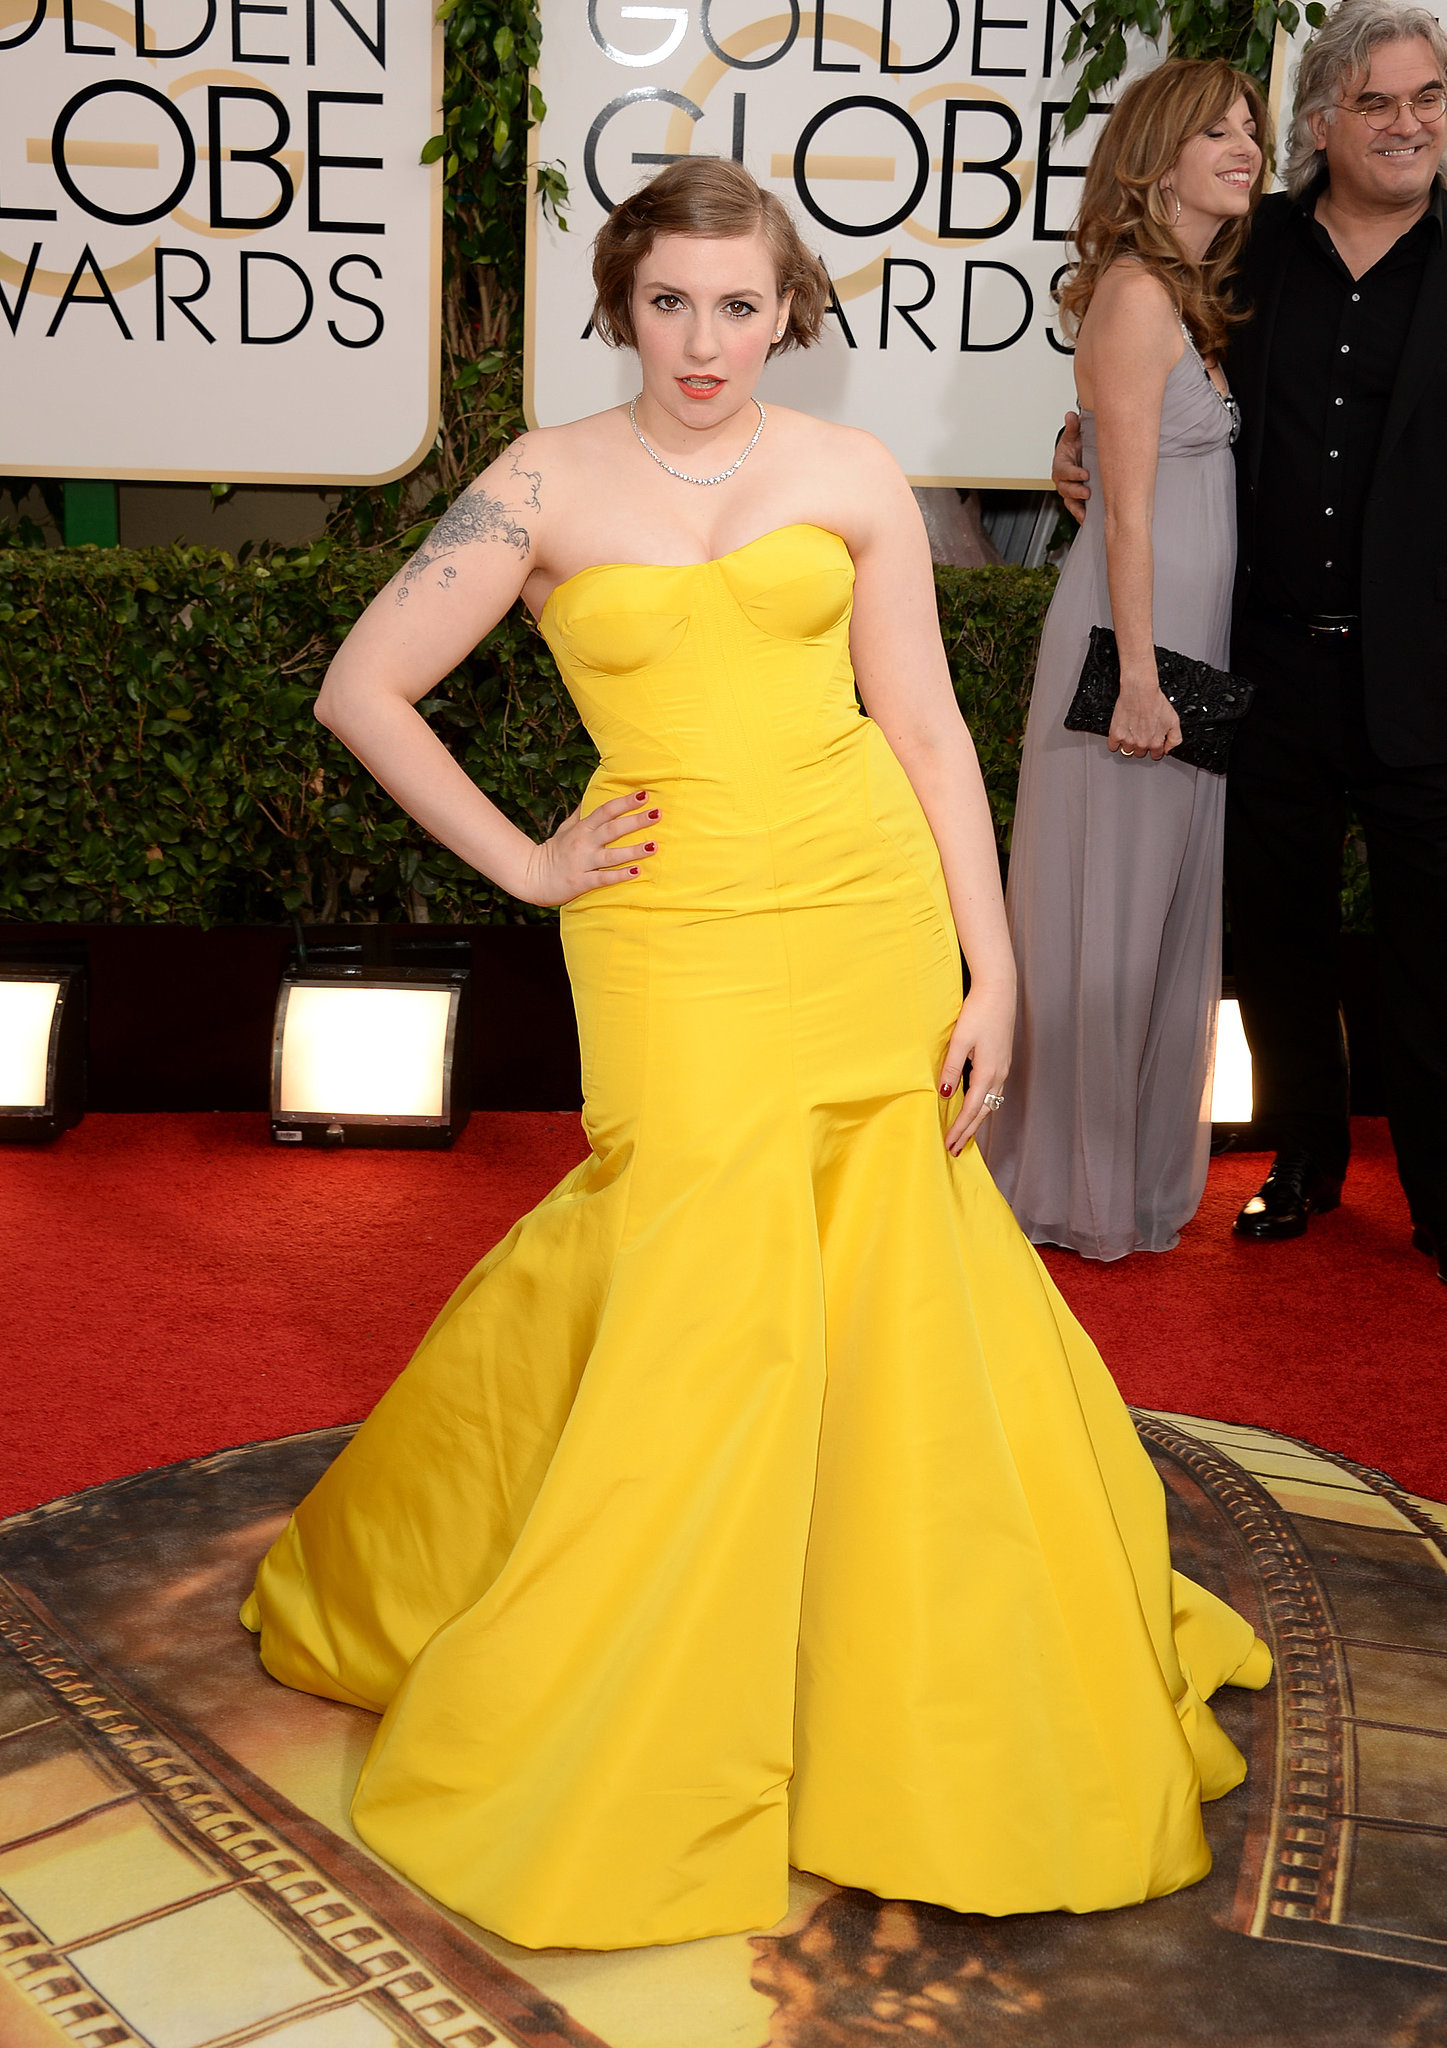 Lena Dunham looked stunning in a bright yellow Zac Posen dress at the Golden Globe Awards.